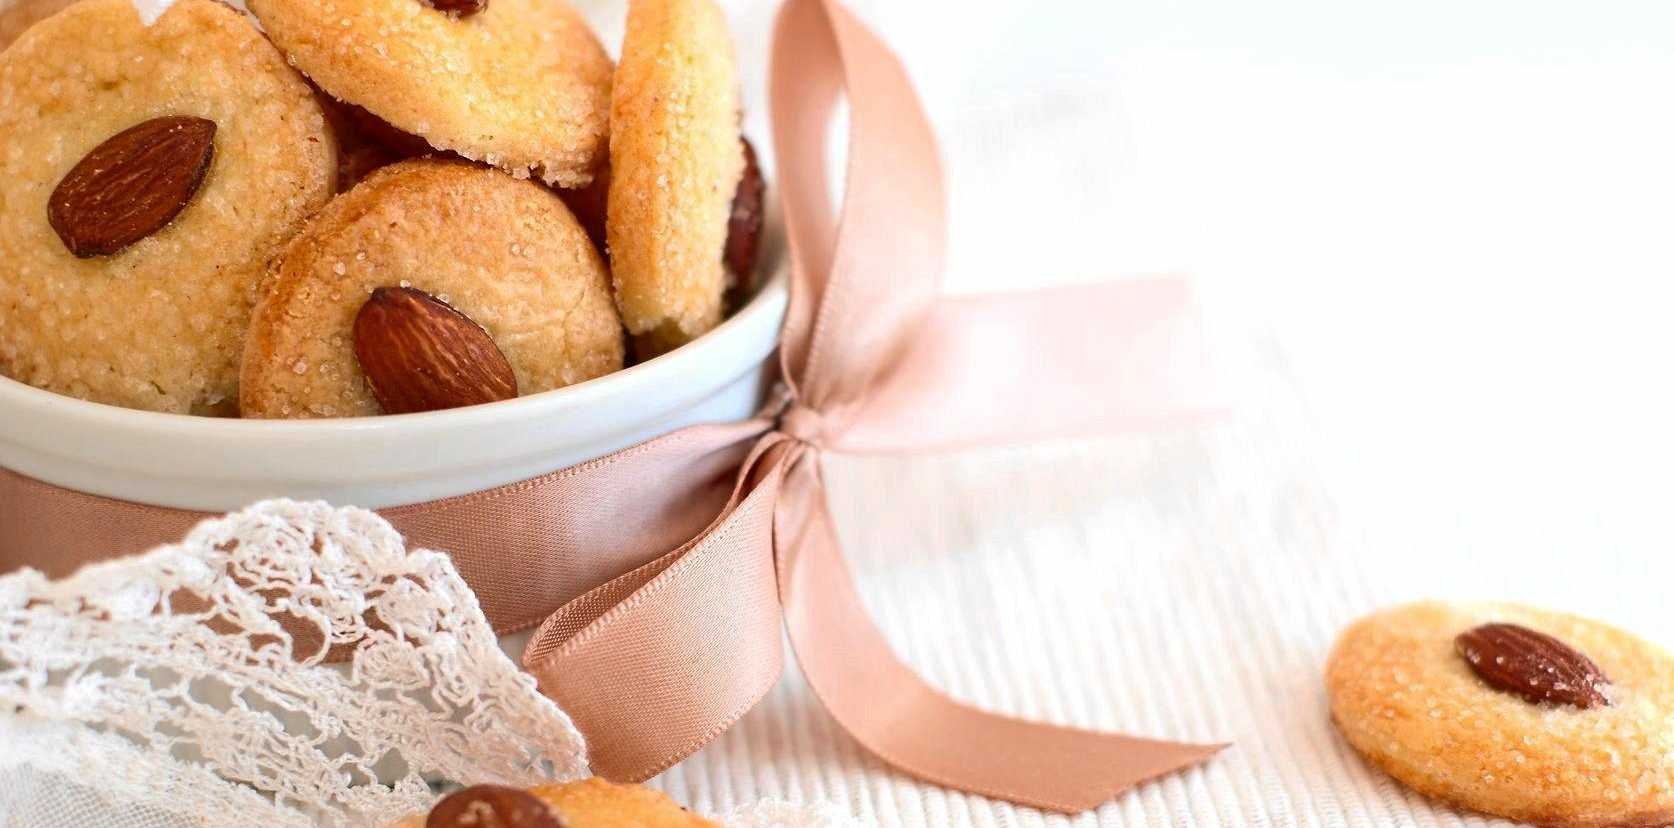 These delicious almond biscuits are perfect for a morning tea treat.